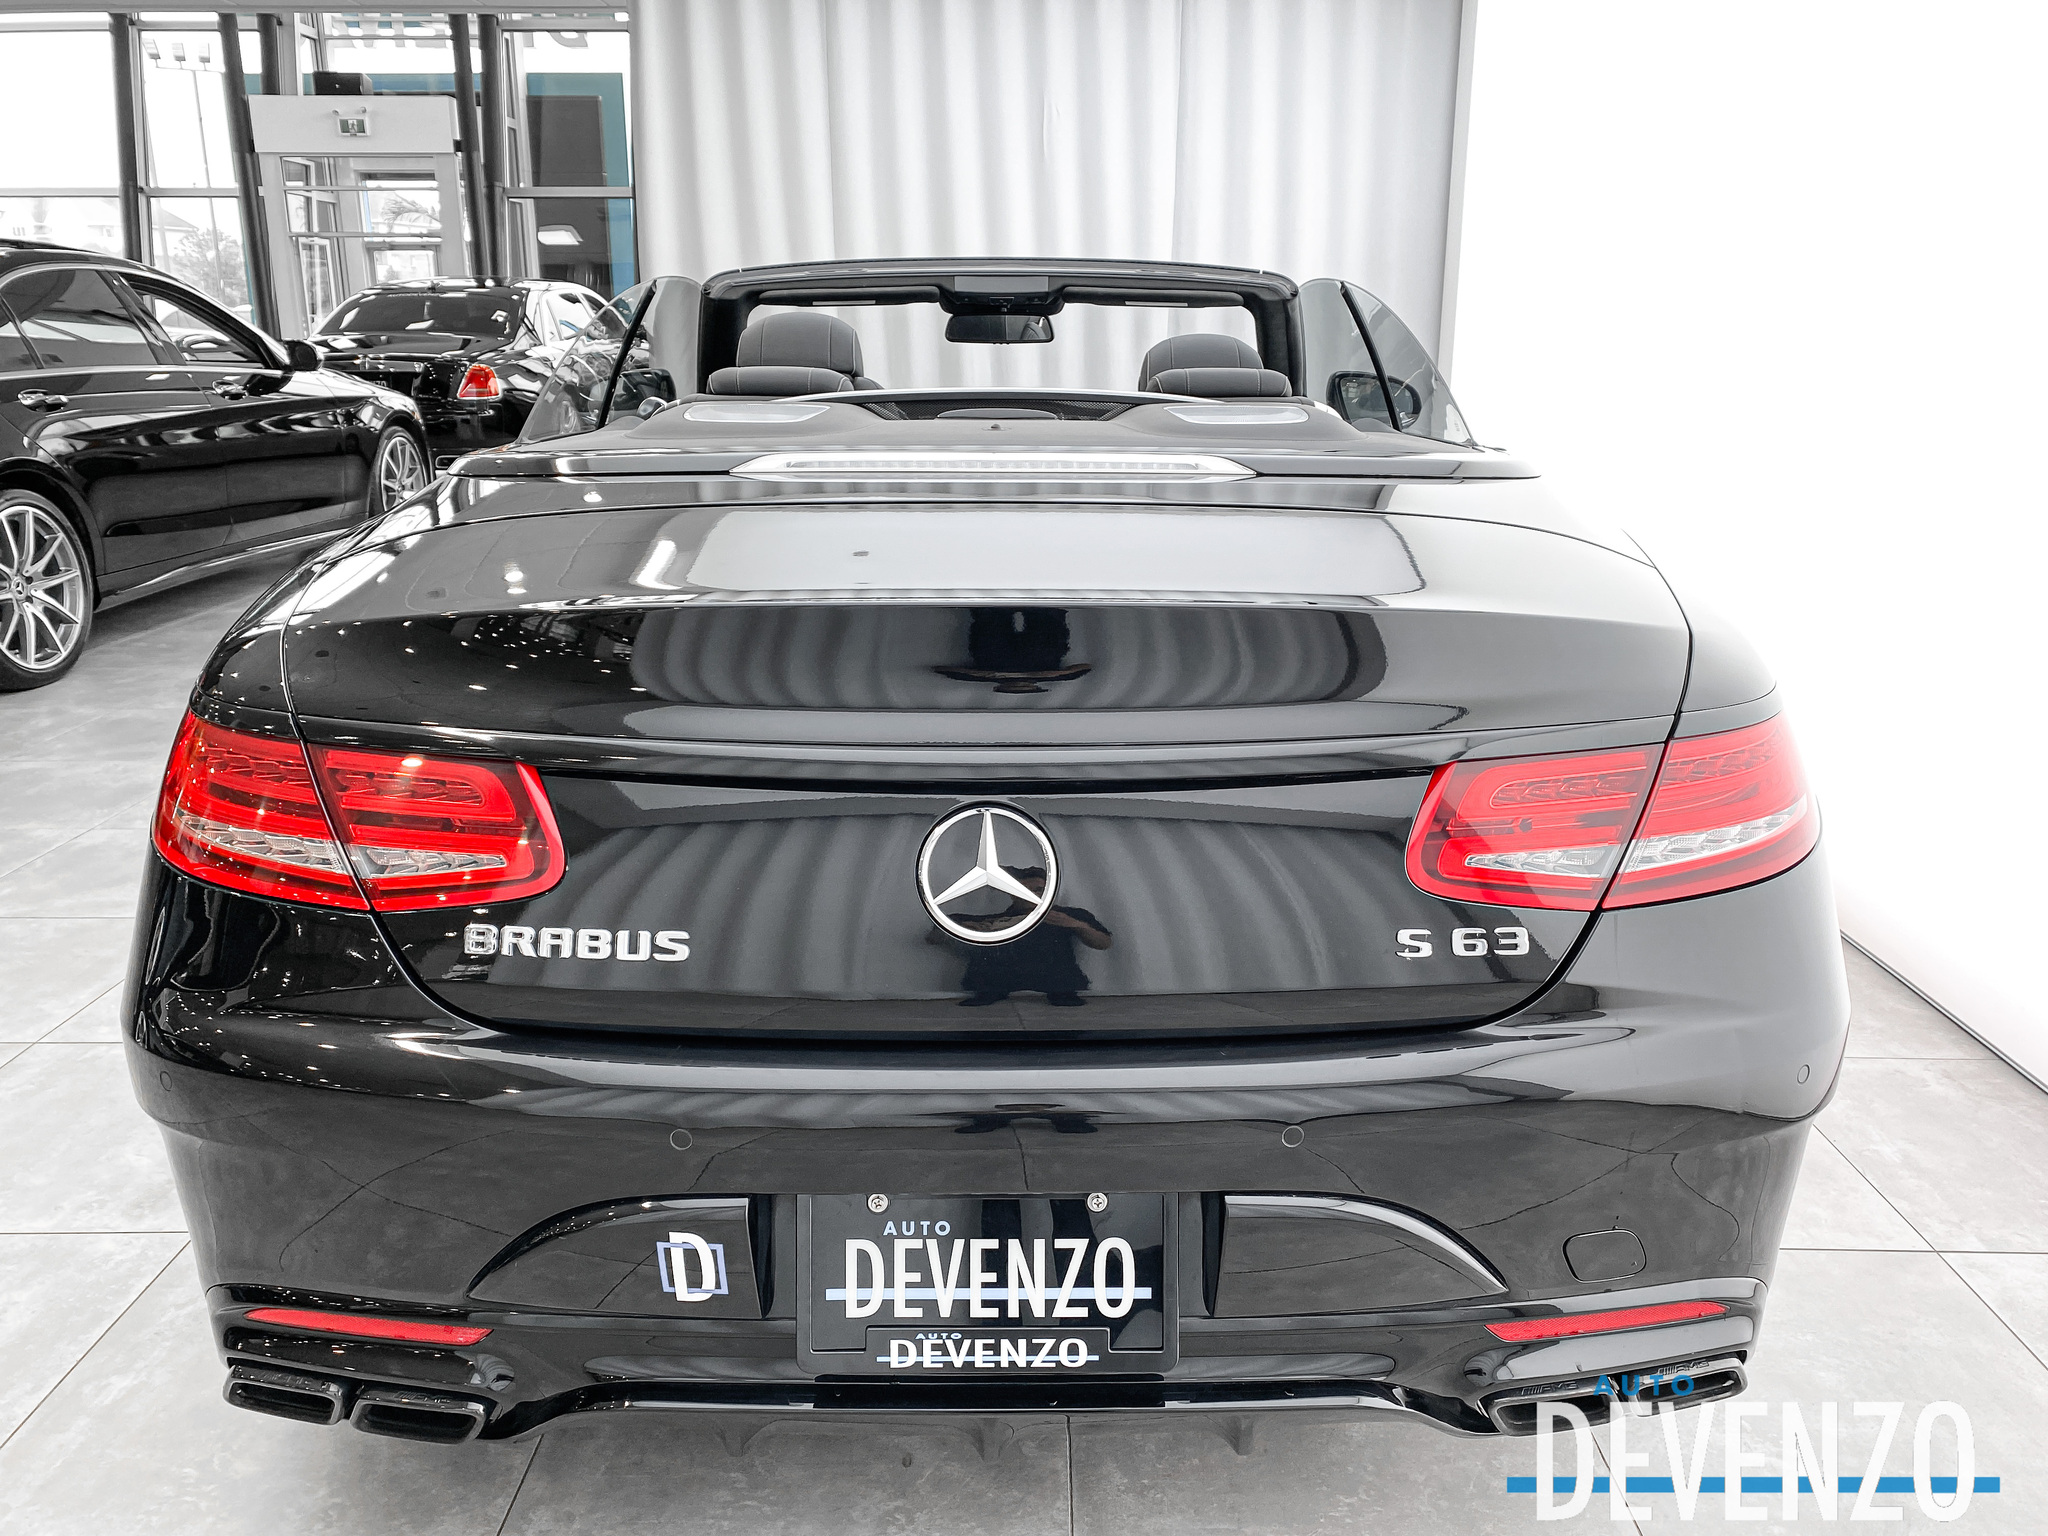 2017 Mercedes-Benz S-Class Cabriolet AMG S63 4MATIC 577HP complet